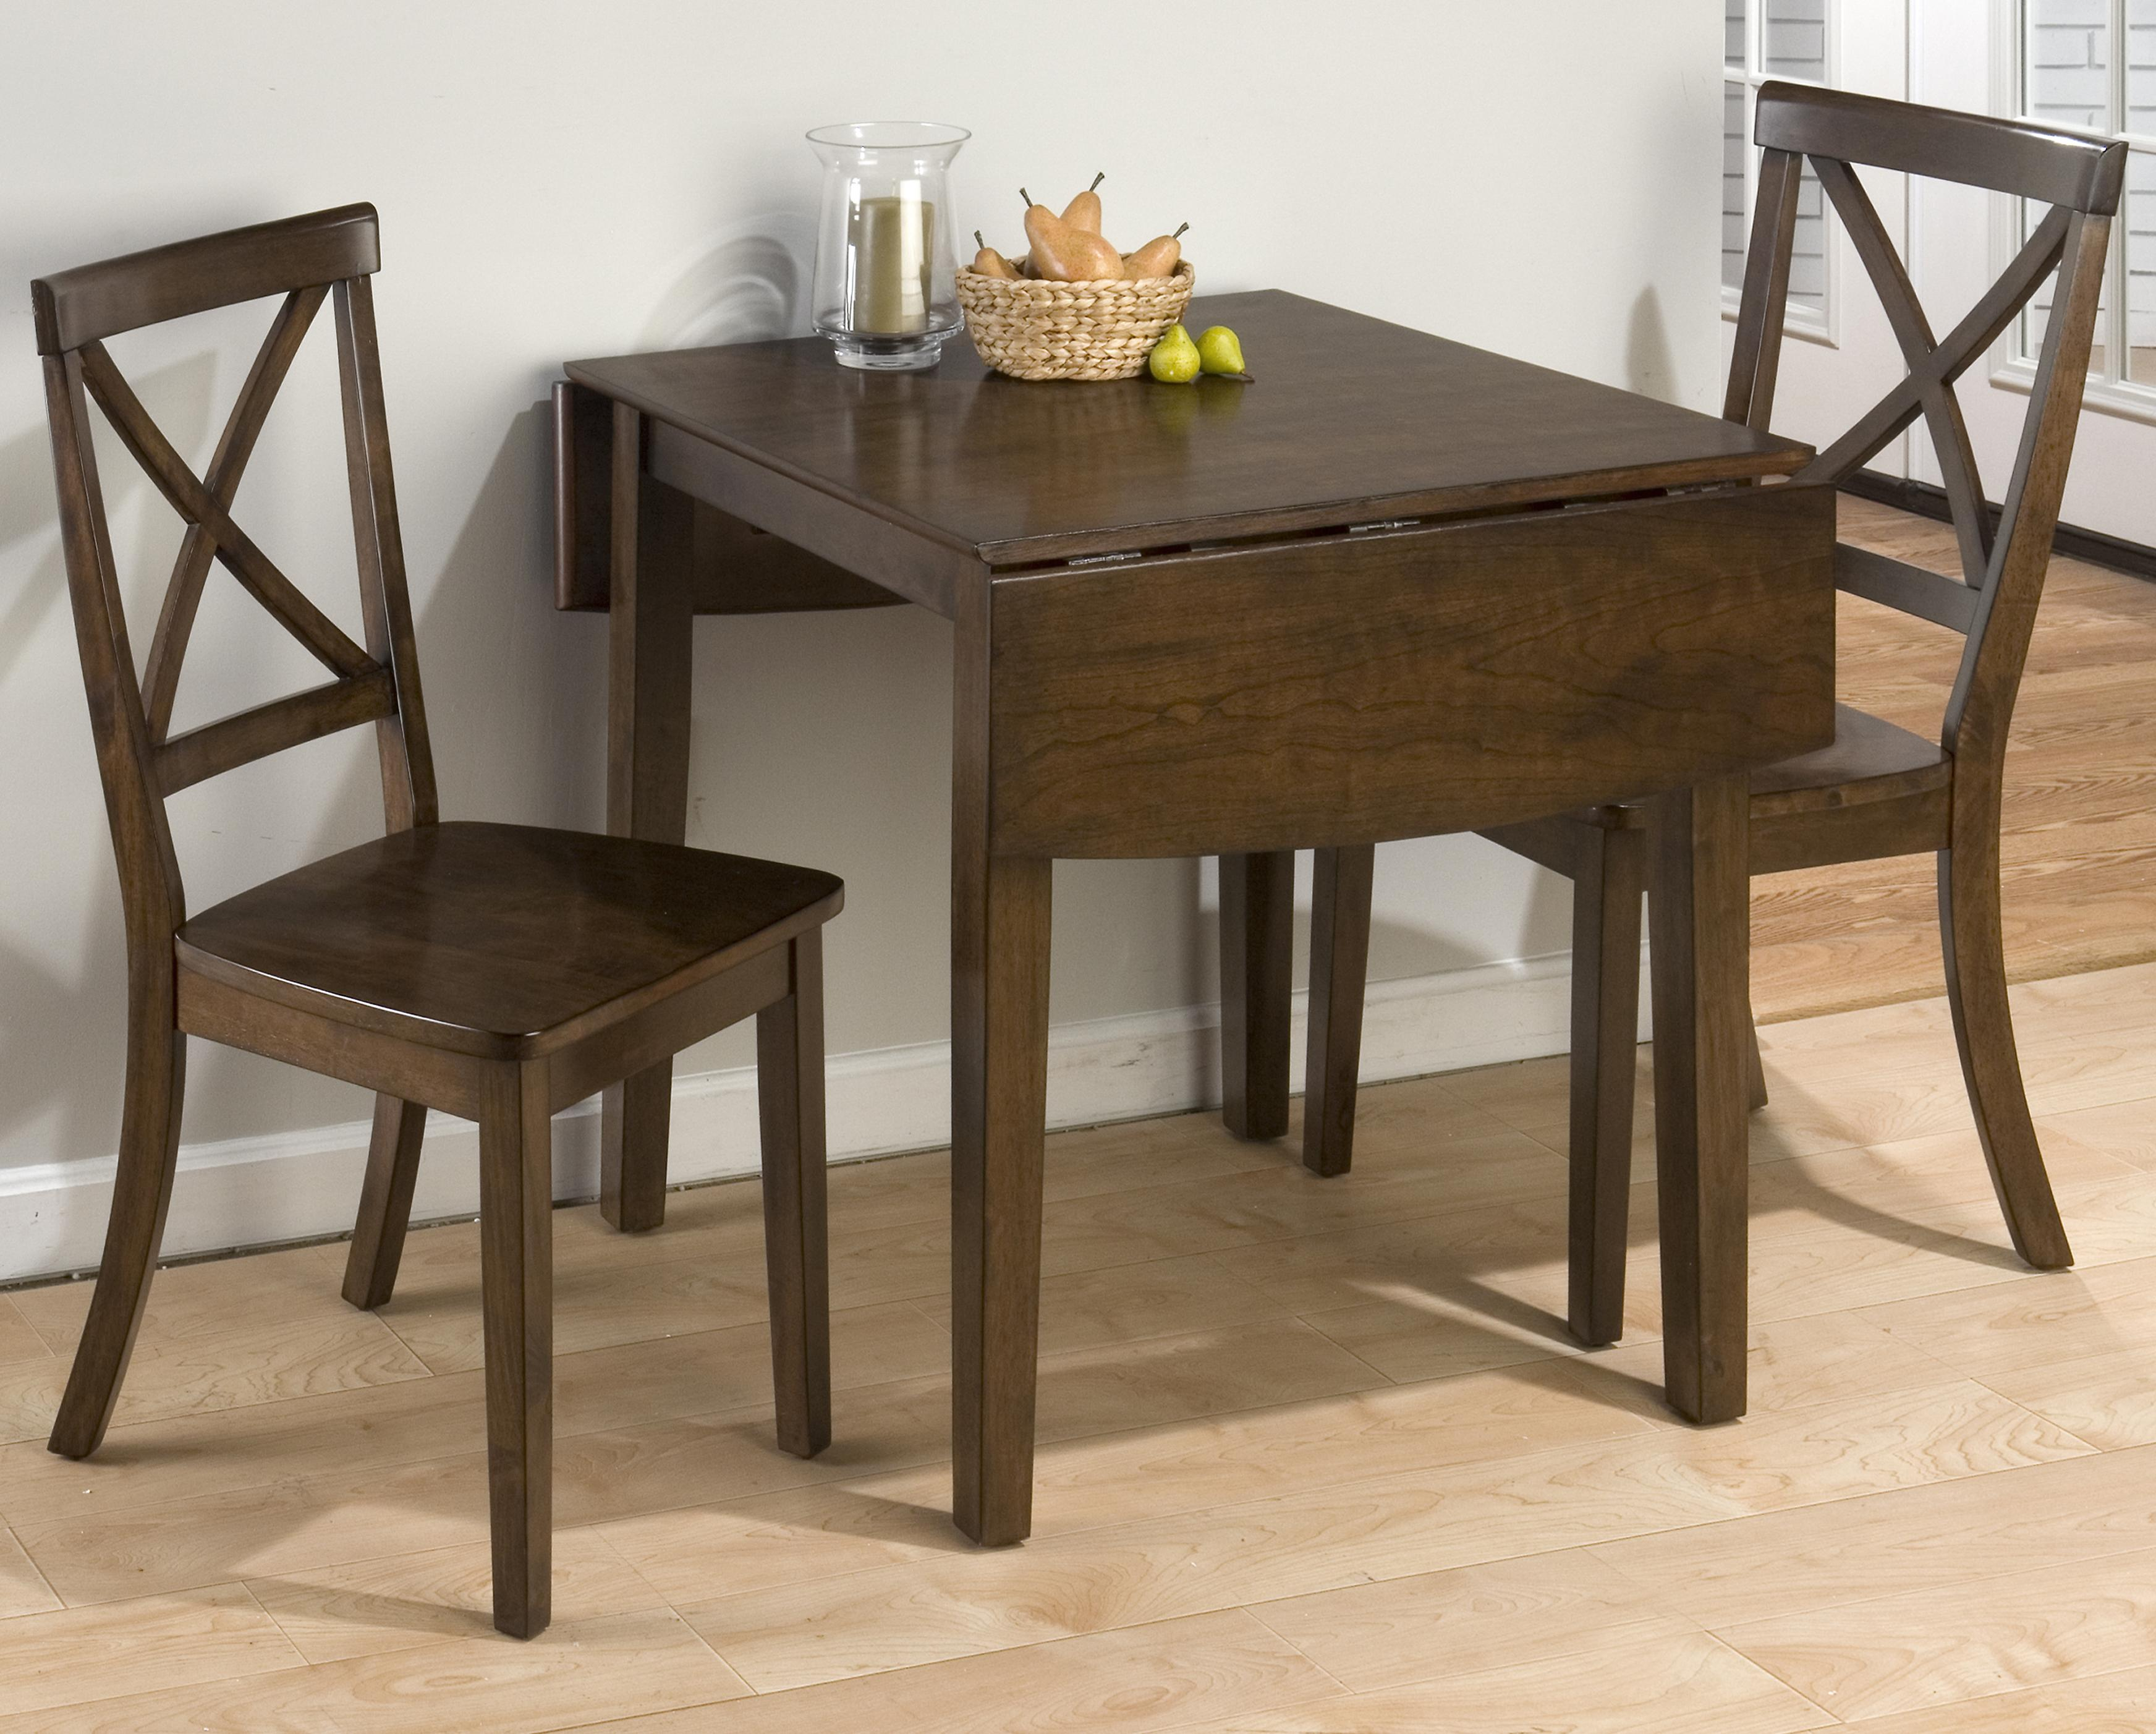 Taylor Cherry 3-Piece Dining Set by Jofran at H.L. Stephens